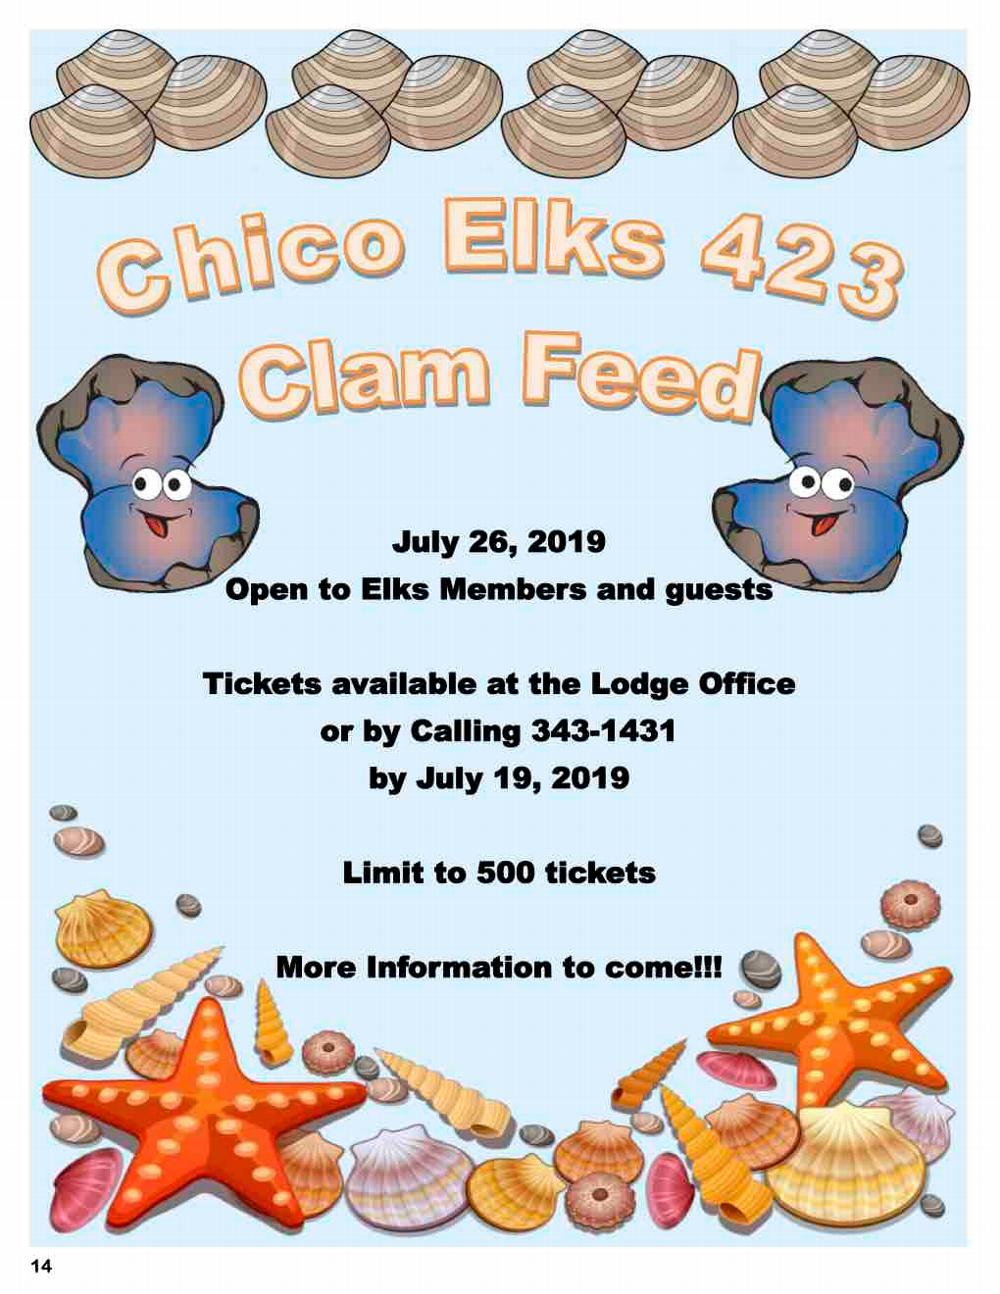 Chico Elks #423 Clam Feed